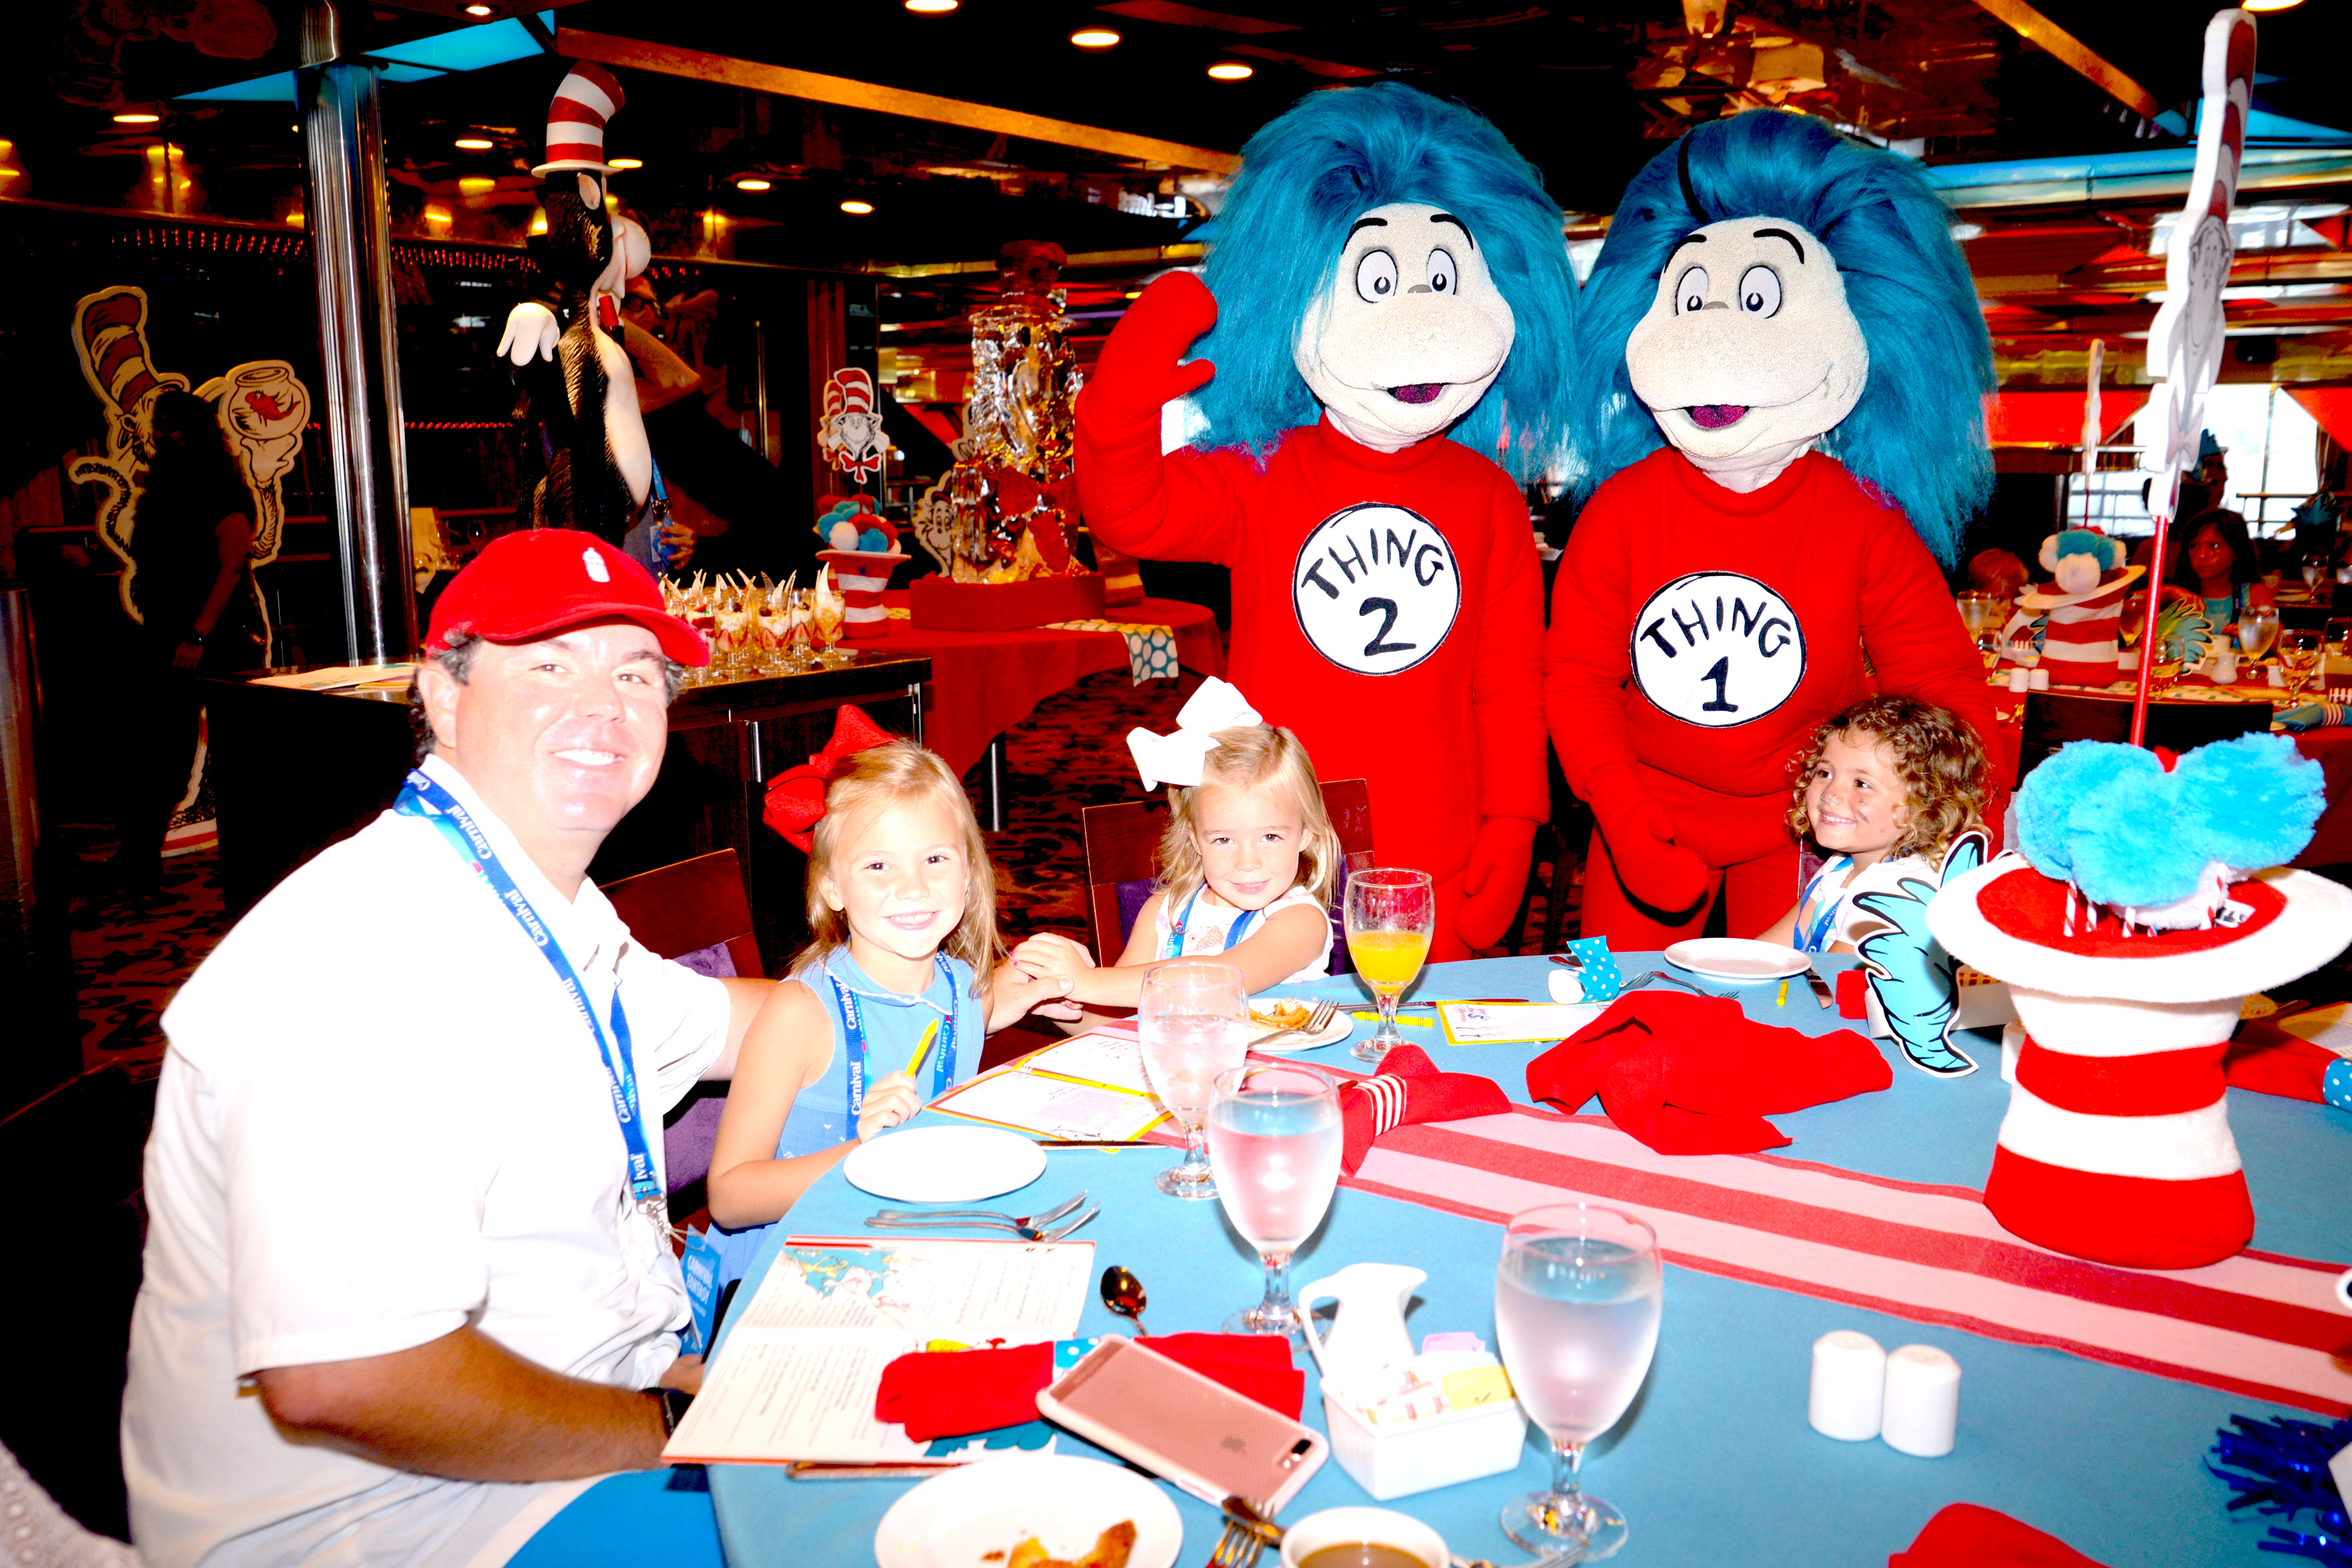 Carnival Cruise Line hosts SEUSS-A-PALOOZA Event Aboard Carnival Fantasy in Mobile, Ala.